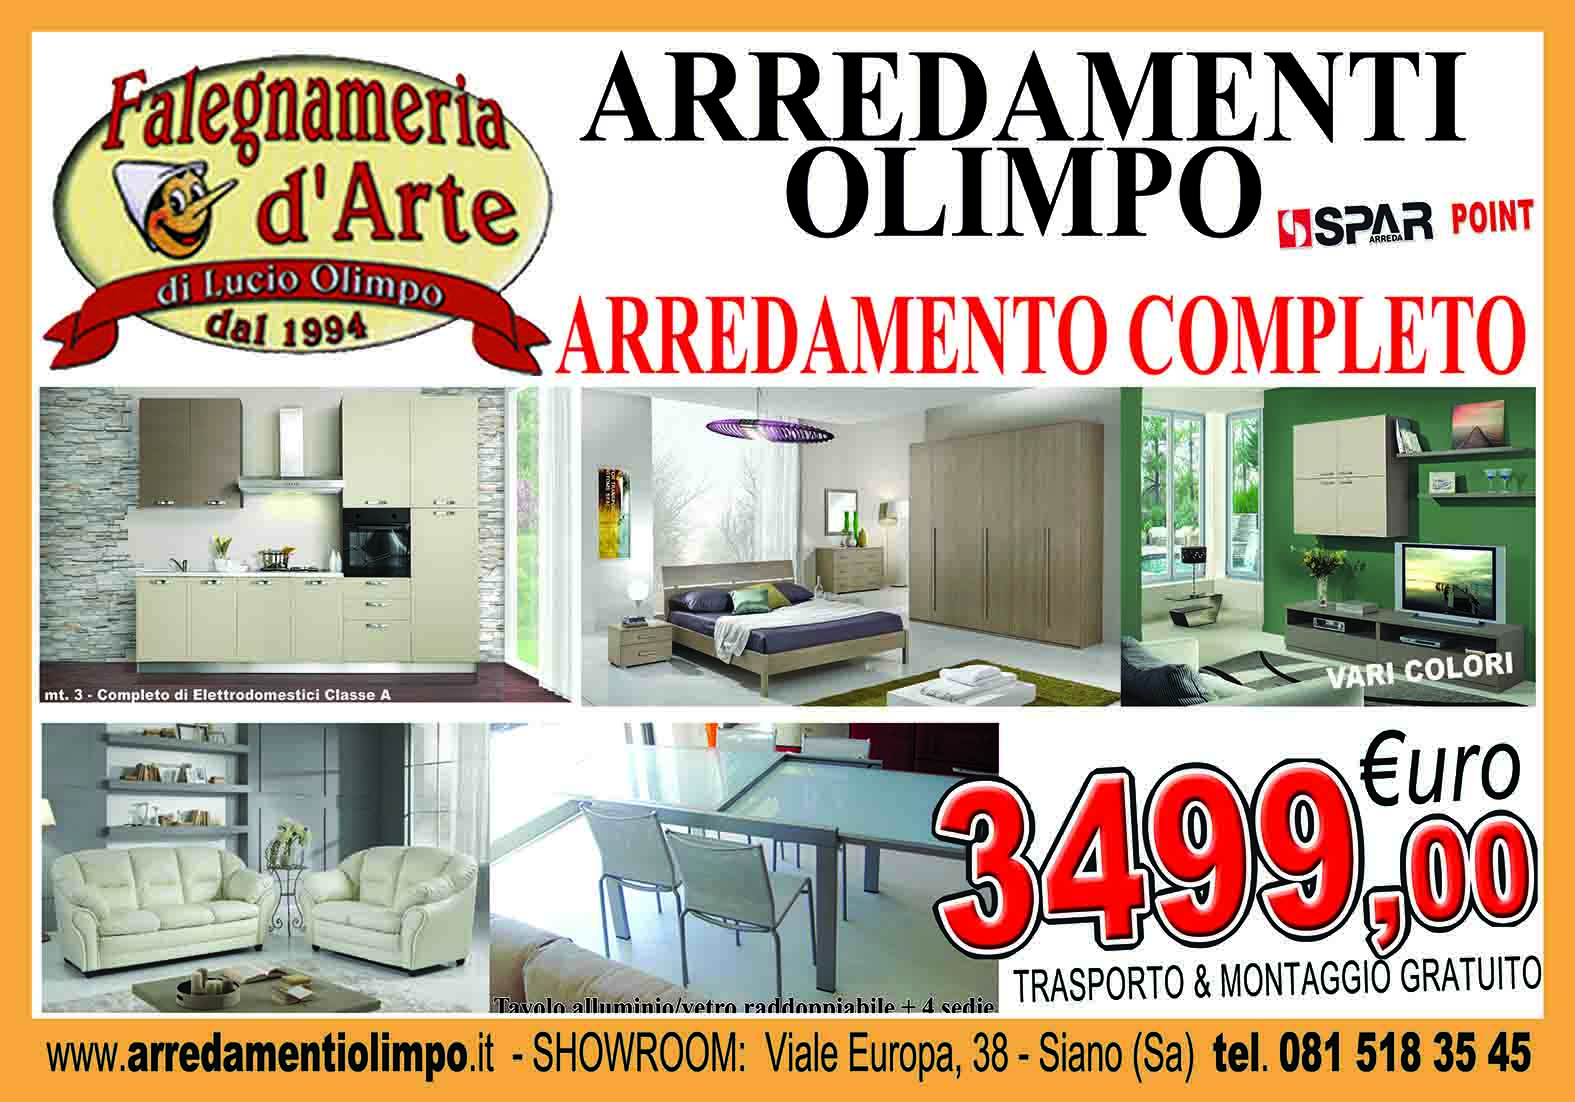 http://www.arredamentiolimpo.it/negozio/images/stories/virtuemart/product/Arredo_completo__5326f7288f772.jpg